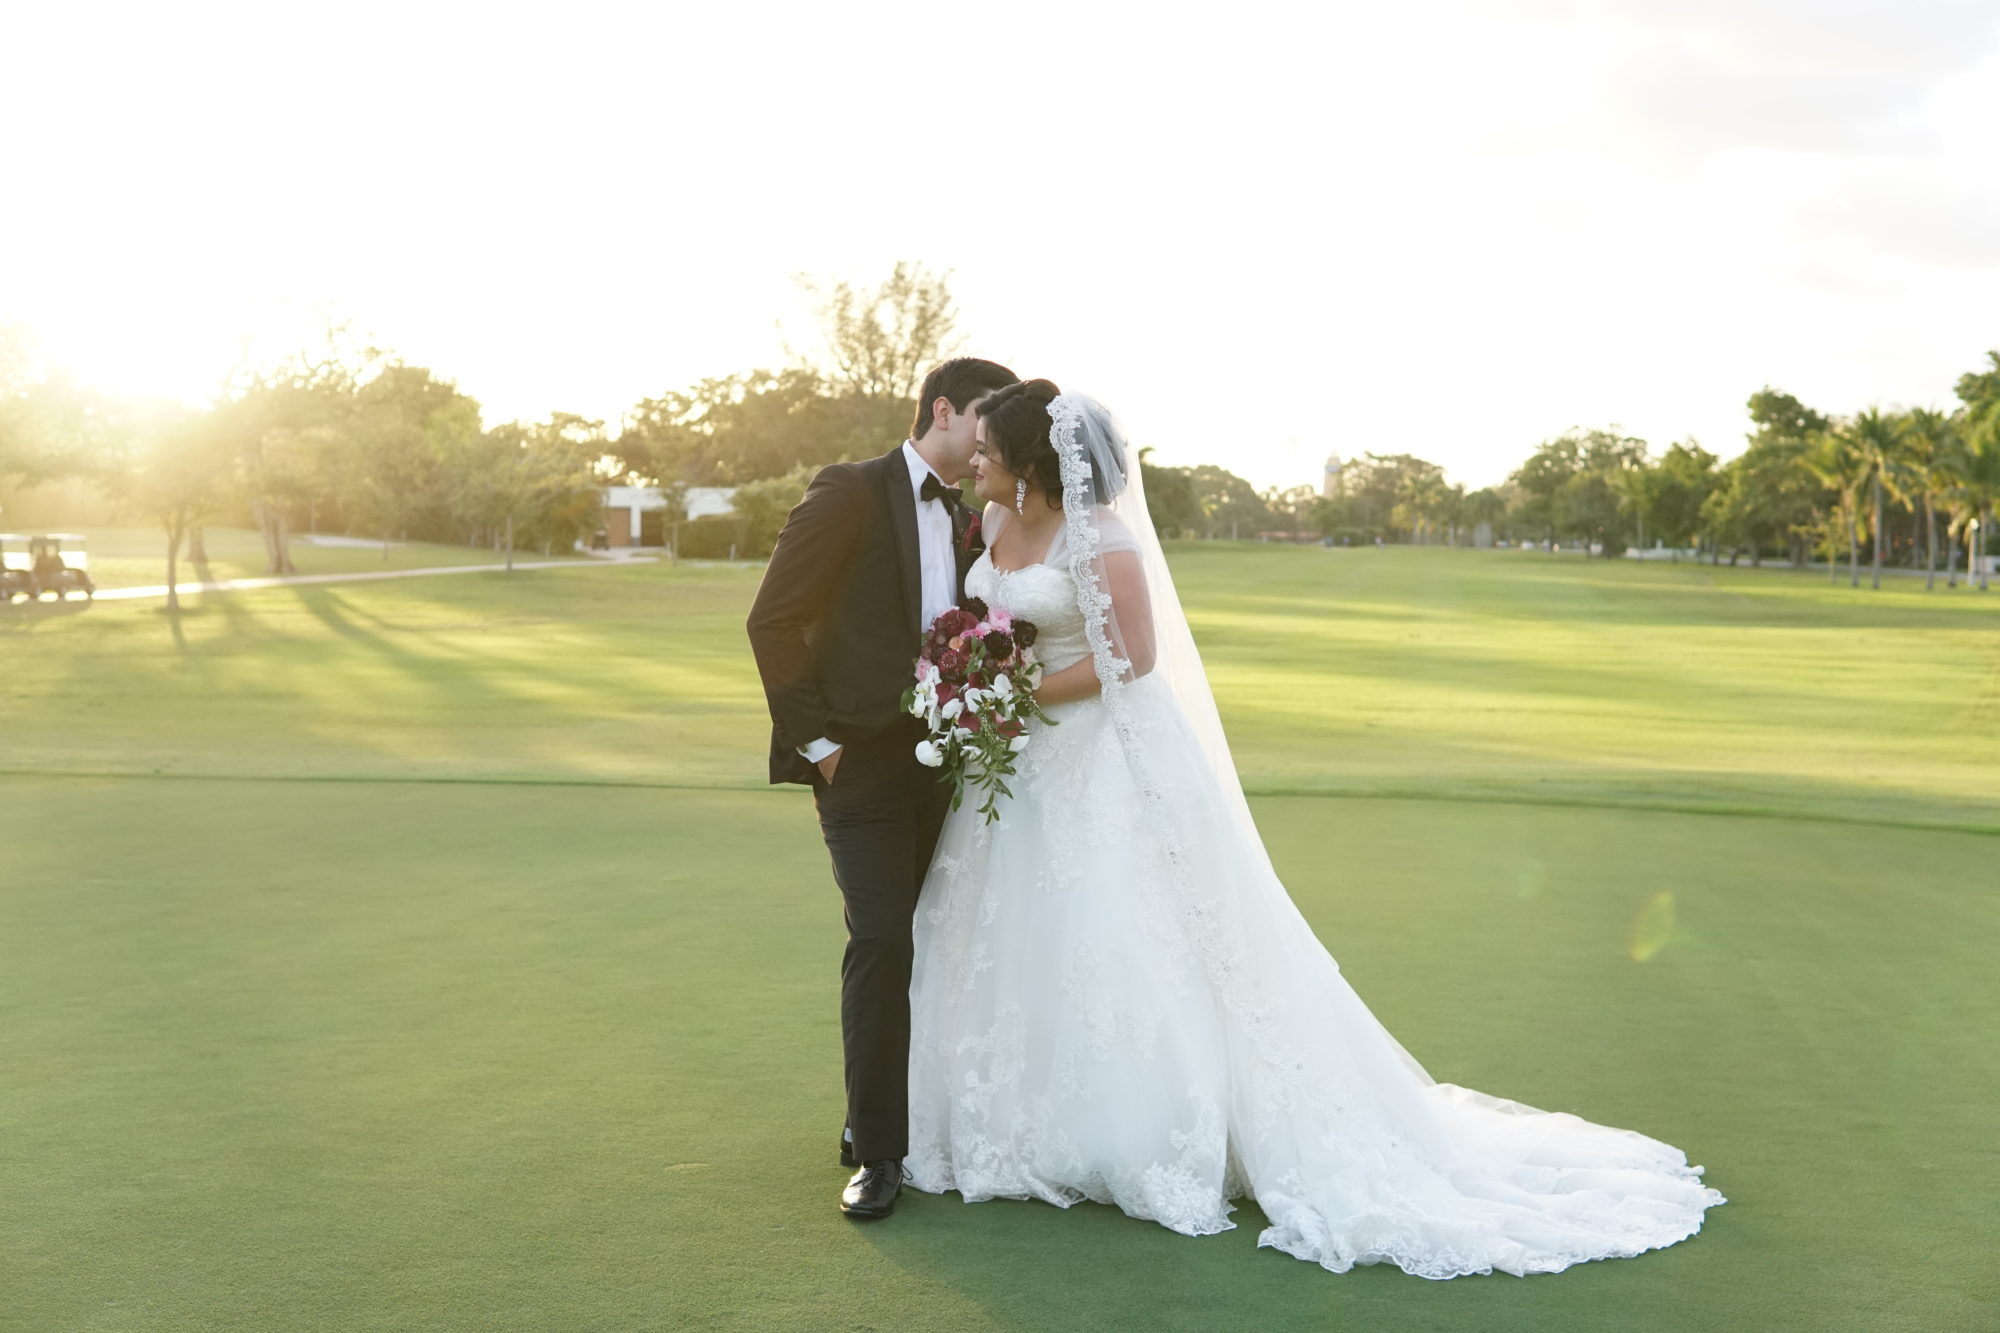 Laura and Gio's Coral Gable Country Club Wedding